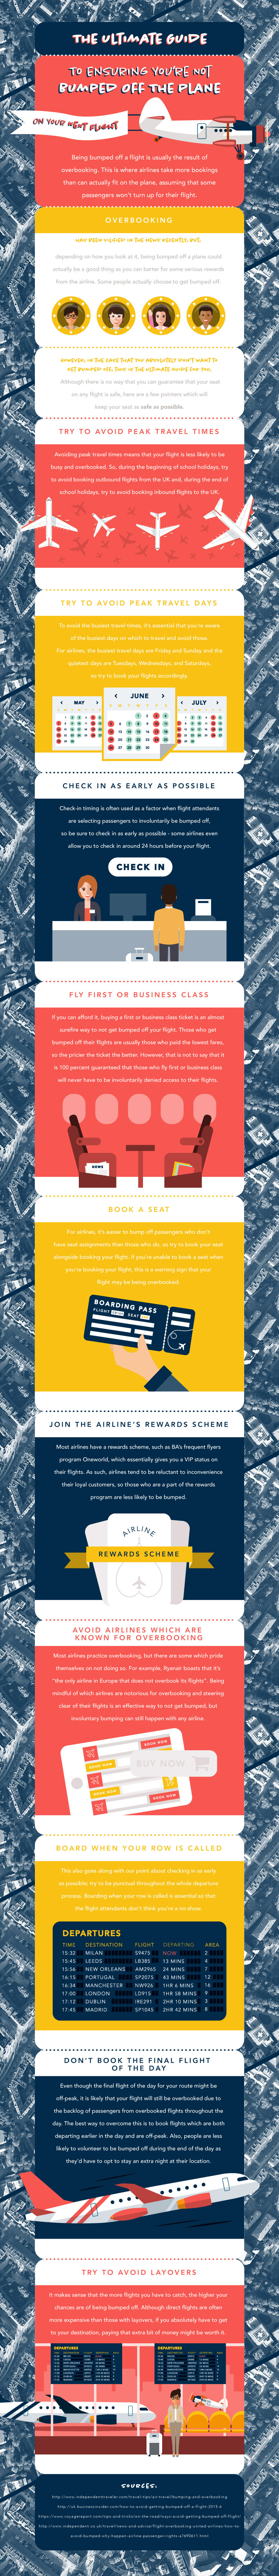 The Ultimate Guide to Ensuring You're Not Bumped Off The Plane on Your Next Flight [infographic]